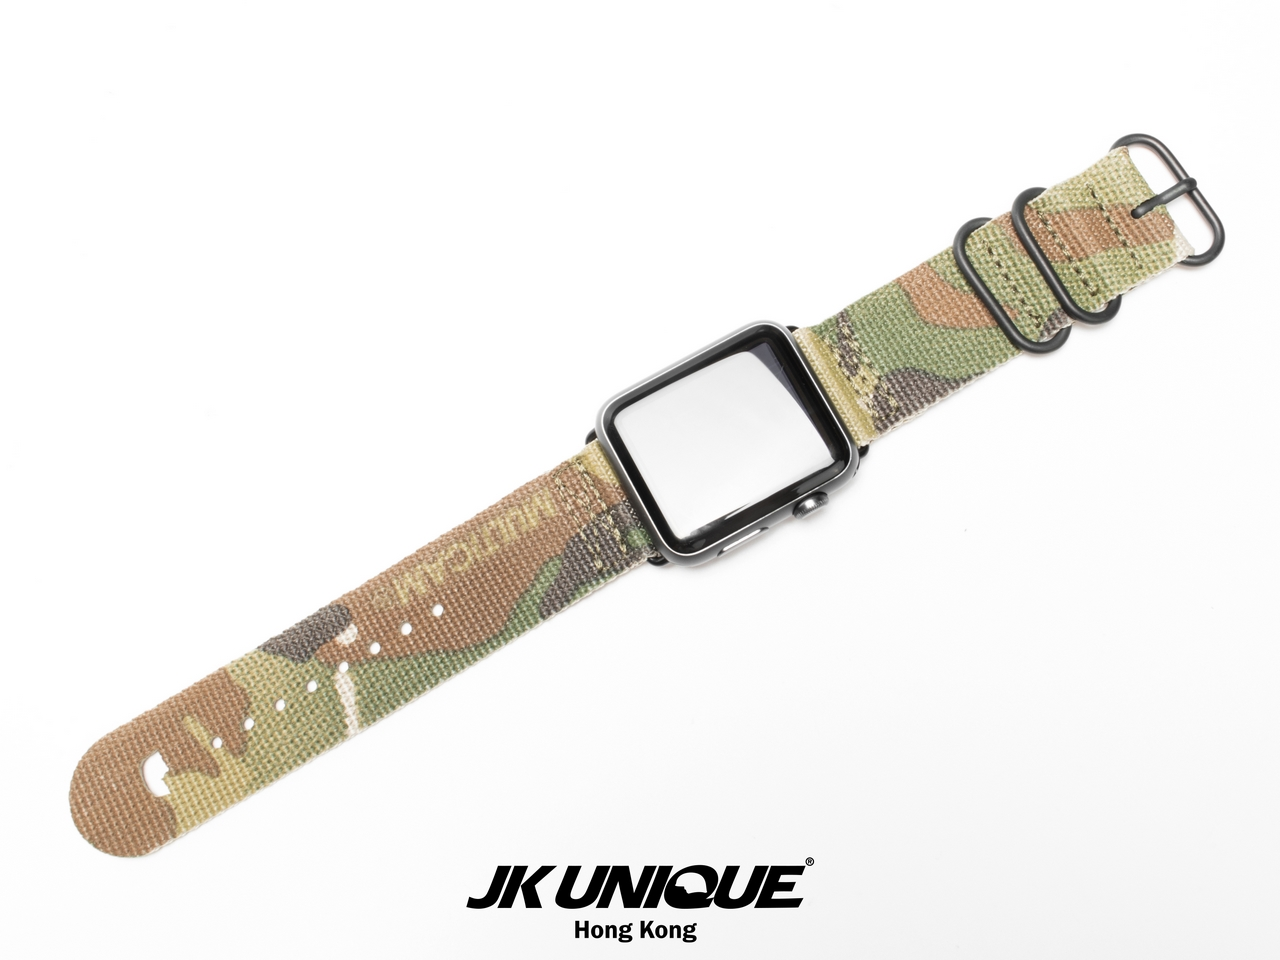 JK-UNIQUE-CAMO-NATO-Apple-Watch-Strap-42mm-BK-Multicam-3 (1280).jpg